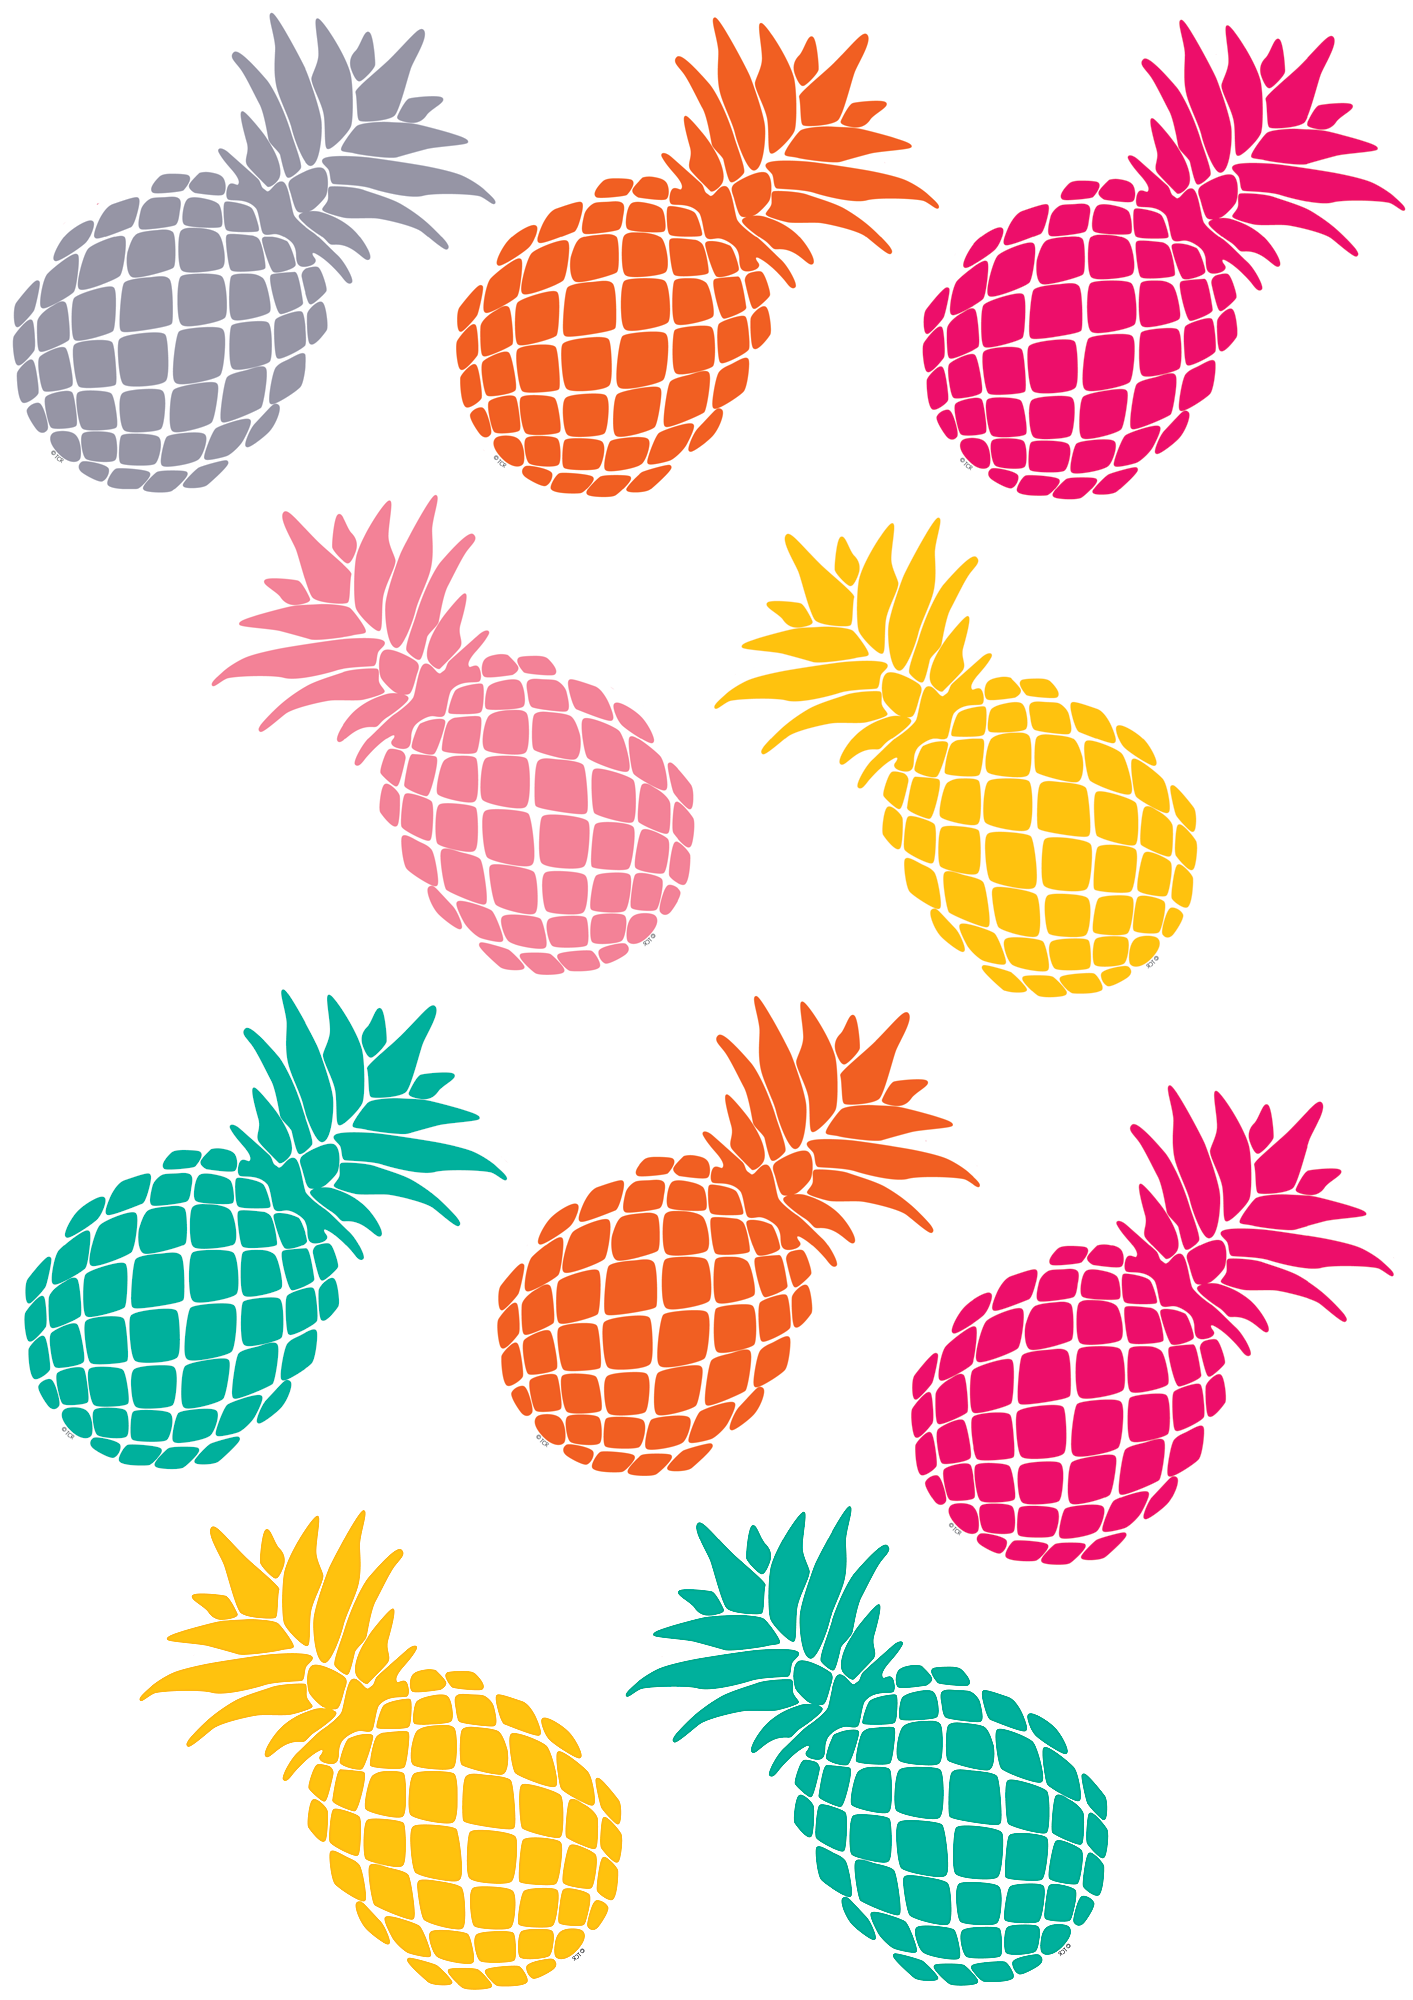 Tropical Punch Pineapples Accents Tropical Punch Pineapple Accents Pineapple Theme